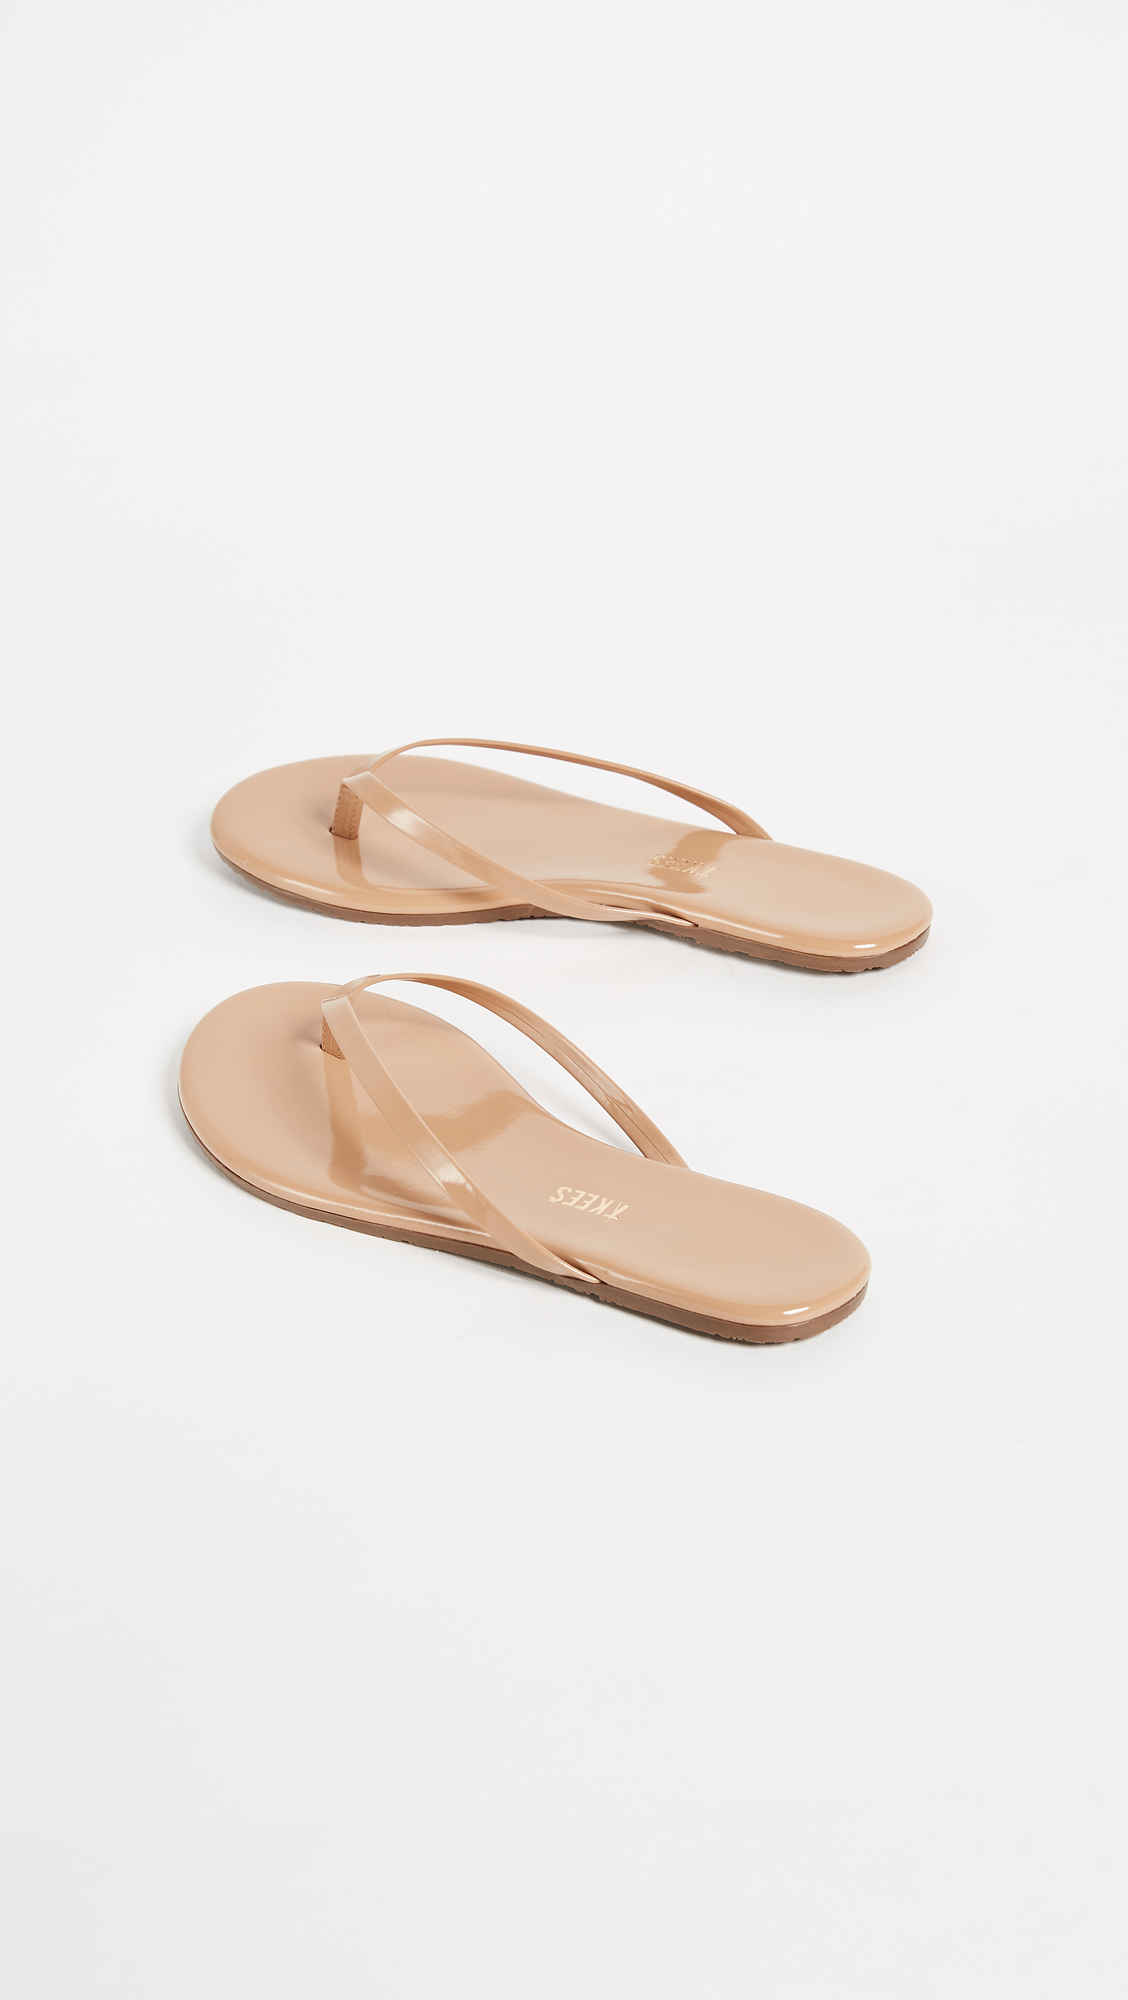 3a86811617c626 TKEES Foundations Glosses Flip Flops